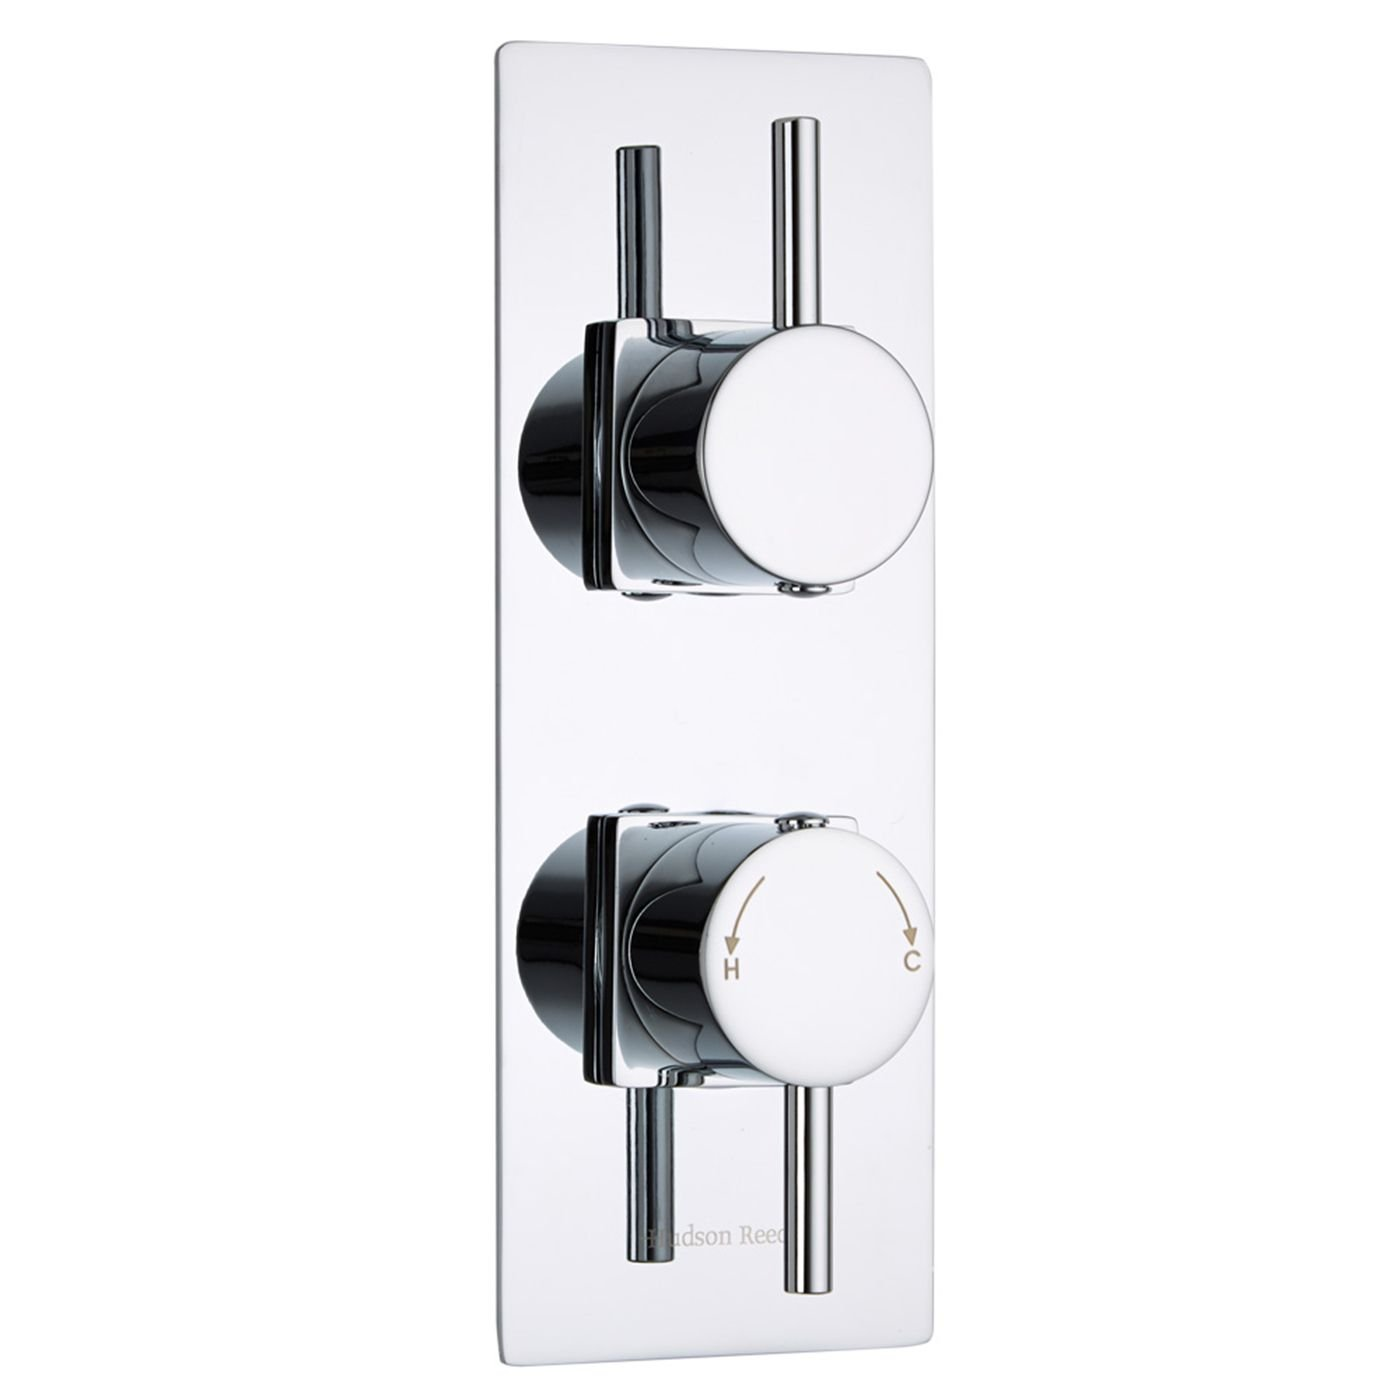 Hudson Reed - Quest Thermostatic Twin Shower Faucet Diverter Valve in Chrome Plated - 2 Outlet Thermostat - Concealed Style - Slim Trim Kit & Round Lever Controls - Modern Design